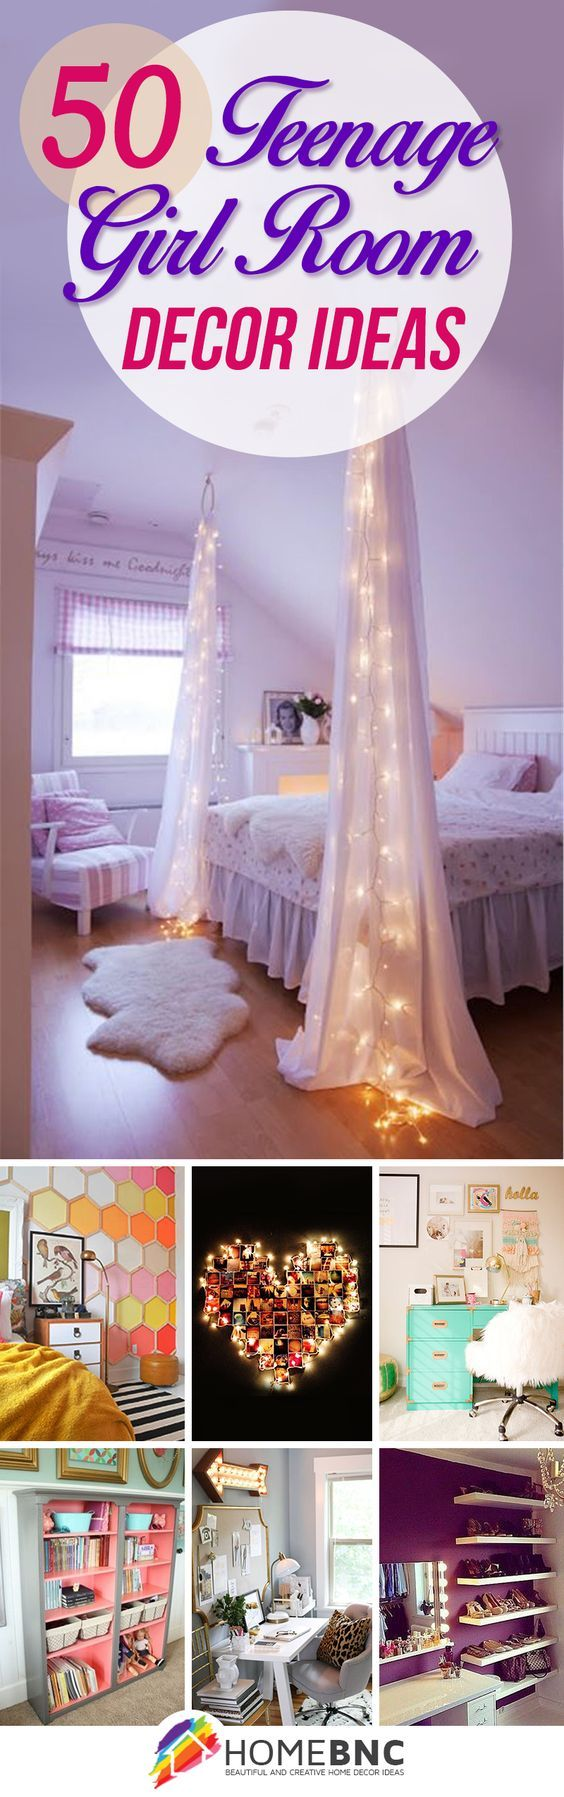 Bedrooms designs for teenagers - 1000 Ideas About Teen Bedroom Designs On Pinterest Teen Room Designs Teen Girl Rooms And Teen Girl Bedrooms